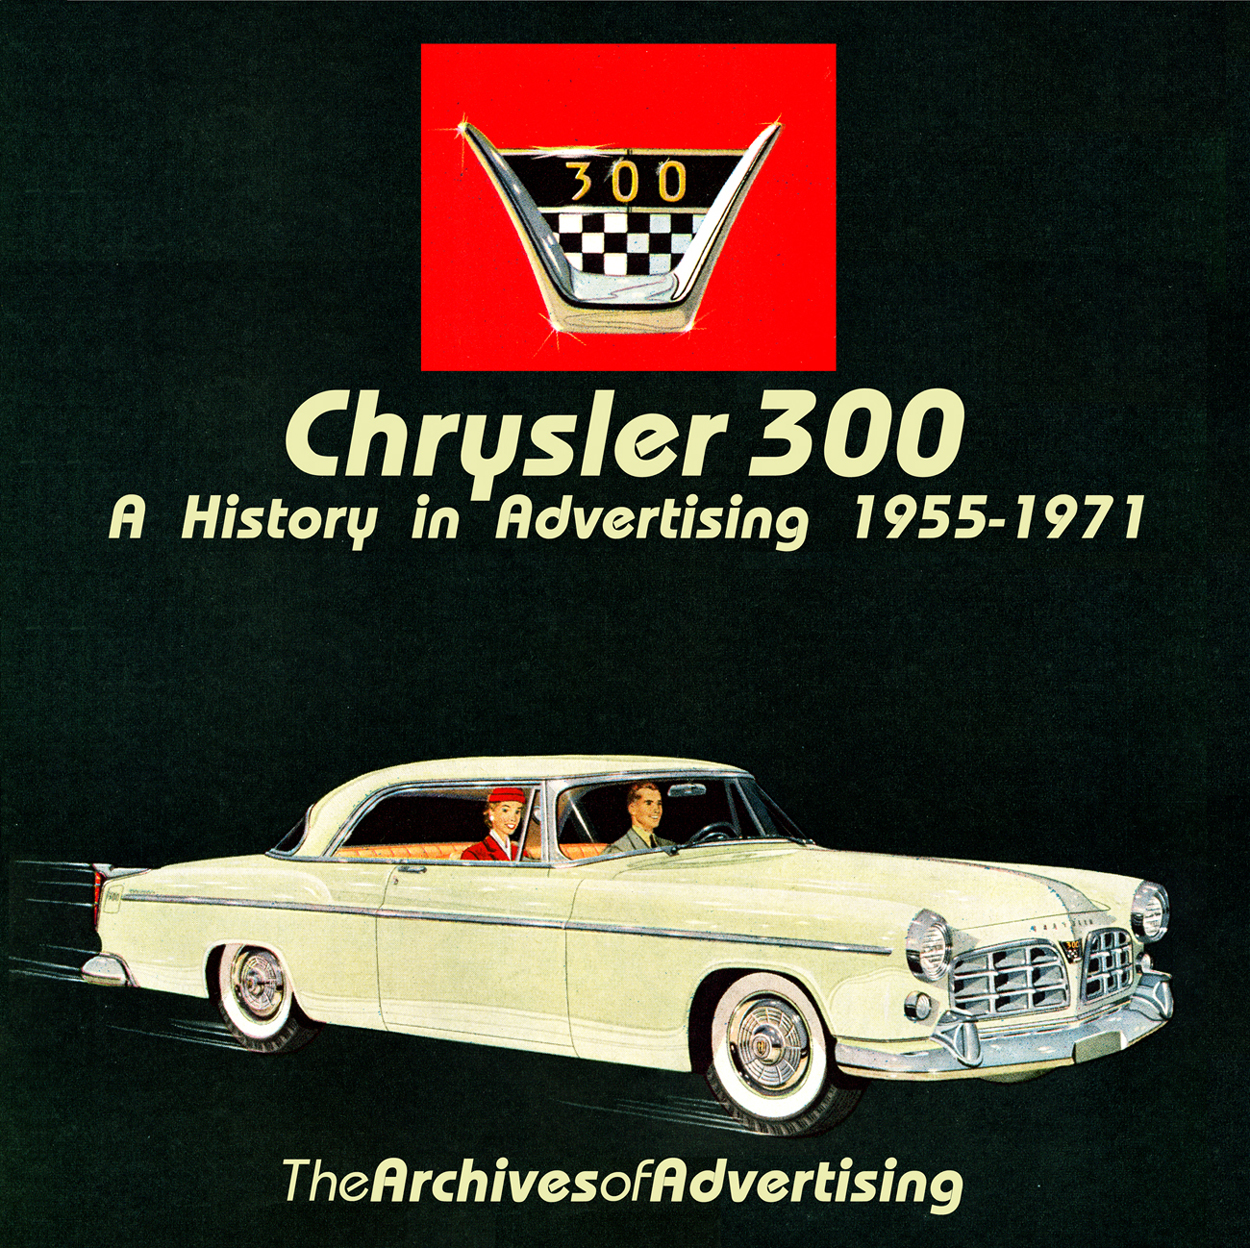 1955 1956 1957 1958 1959 1960 1961 1962 1963-1970 Chrysler 300 ad CD-ROM 80+ ads